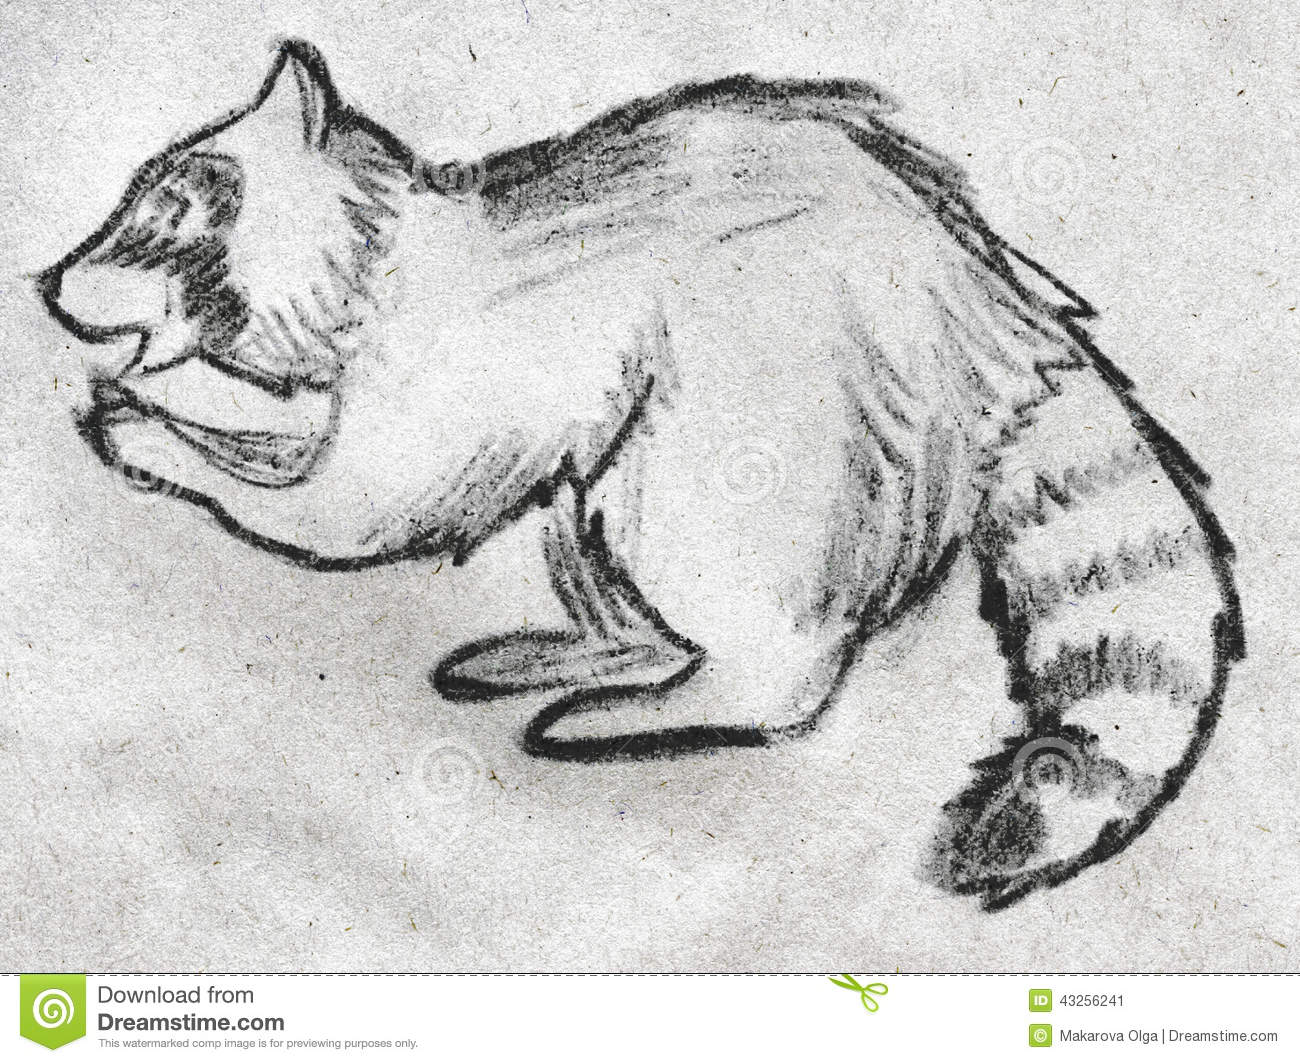 Hand drawn pencil sketch of a raccoon eating something side view